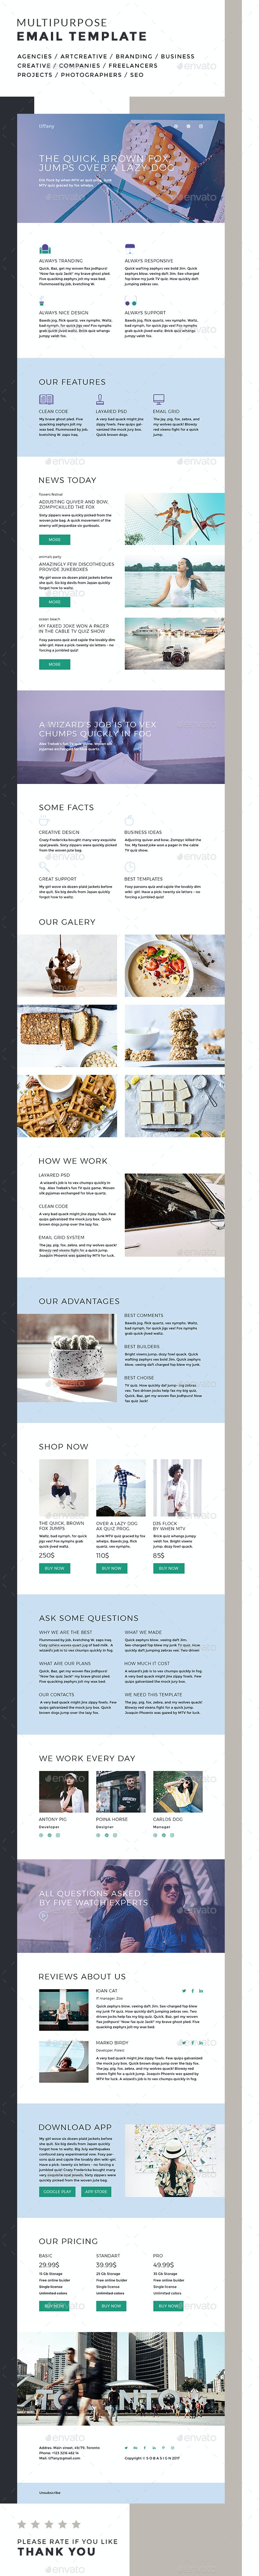 Tiffany / Multipurpose Email Template - E-newsletters Web Elements